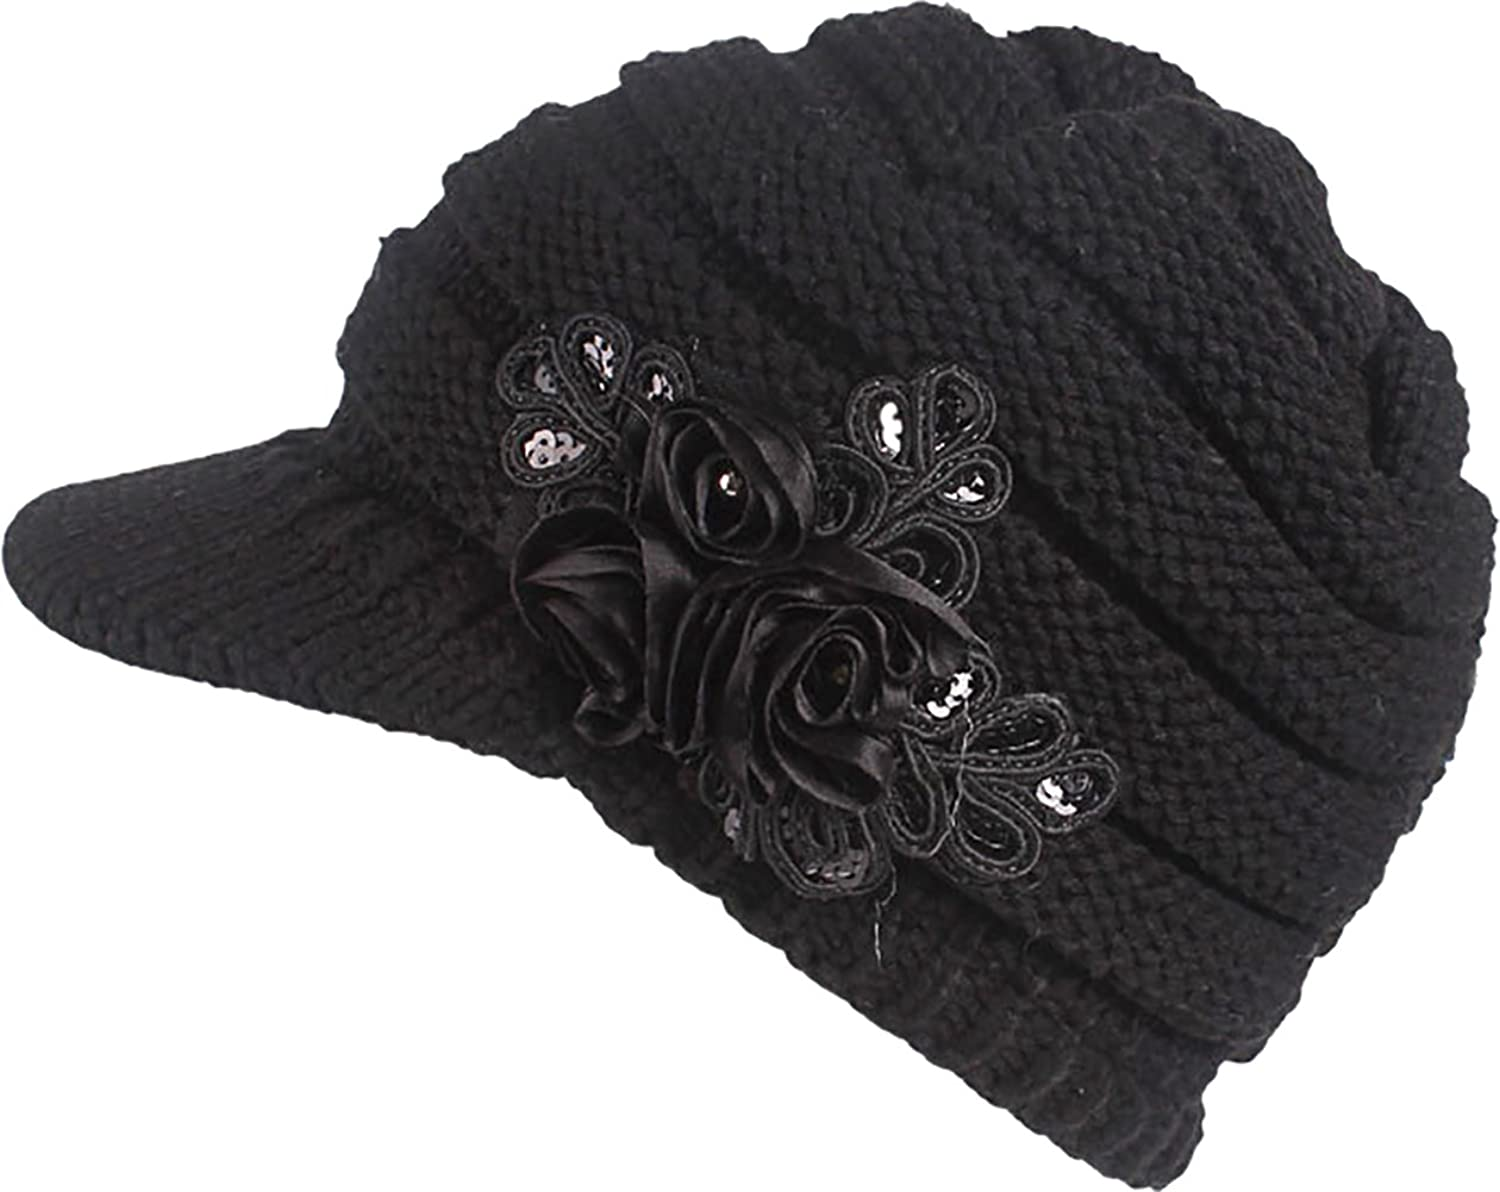 00ed7329898 Ababalaya Women s Winter Warm Cable Knitted newsboy Visor Cap Hat With  Sequined Flower